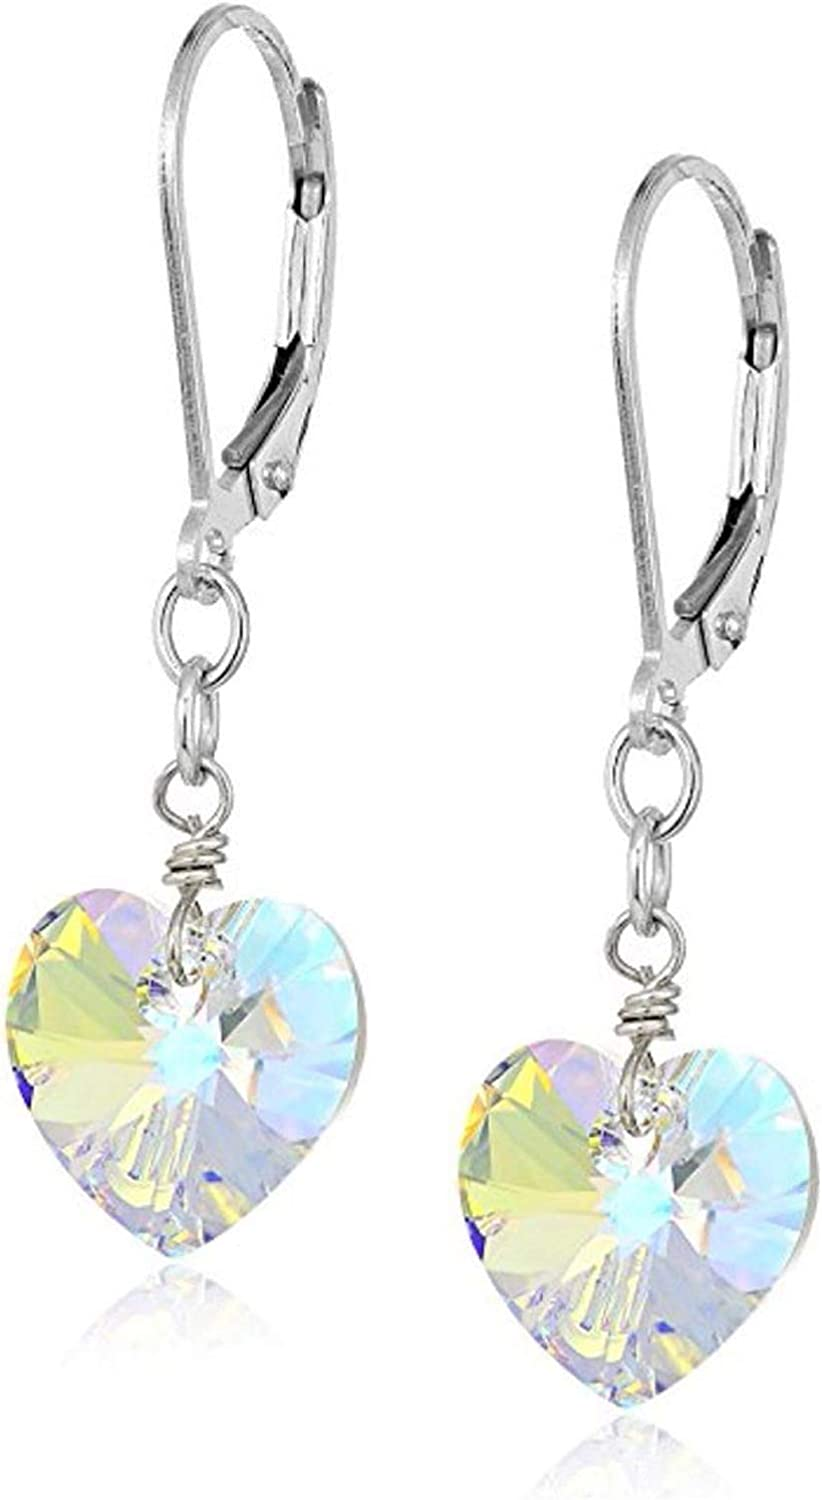 1 Pair Authentic Complete Free Shipping Ranking TOP20 925 Sterling Cry Earrings Drop Silver Swarovski